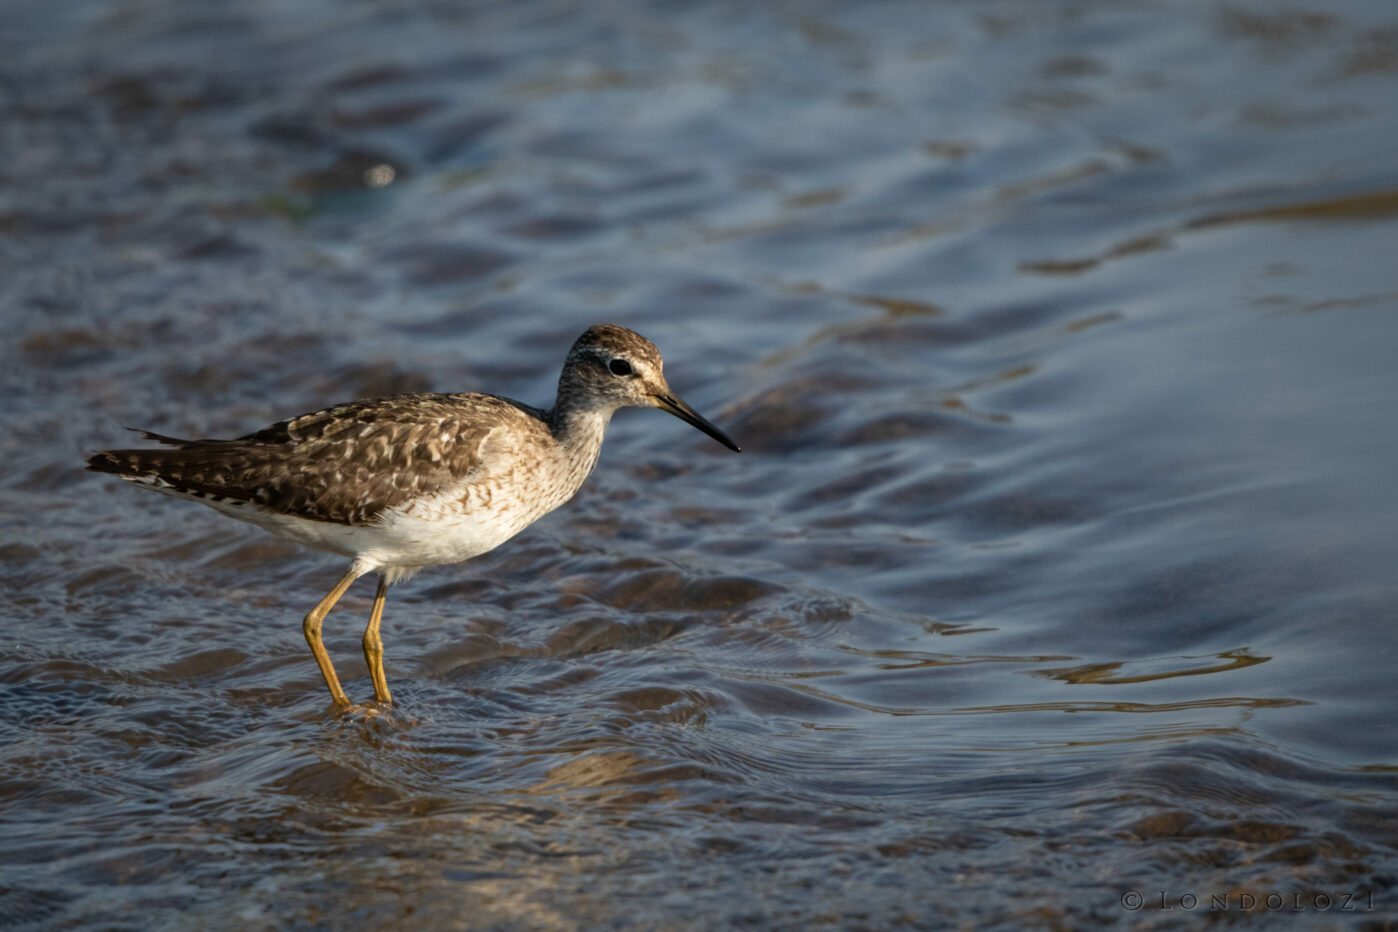 Ns Wood Sandpiper Wading in Water